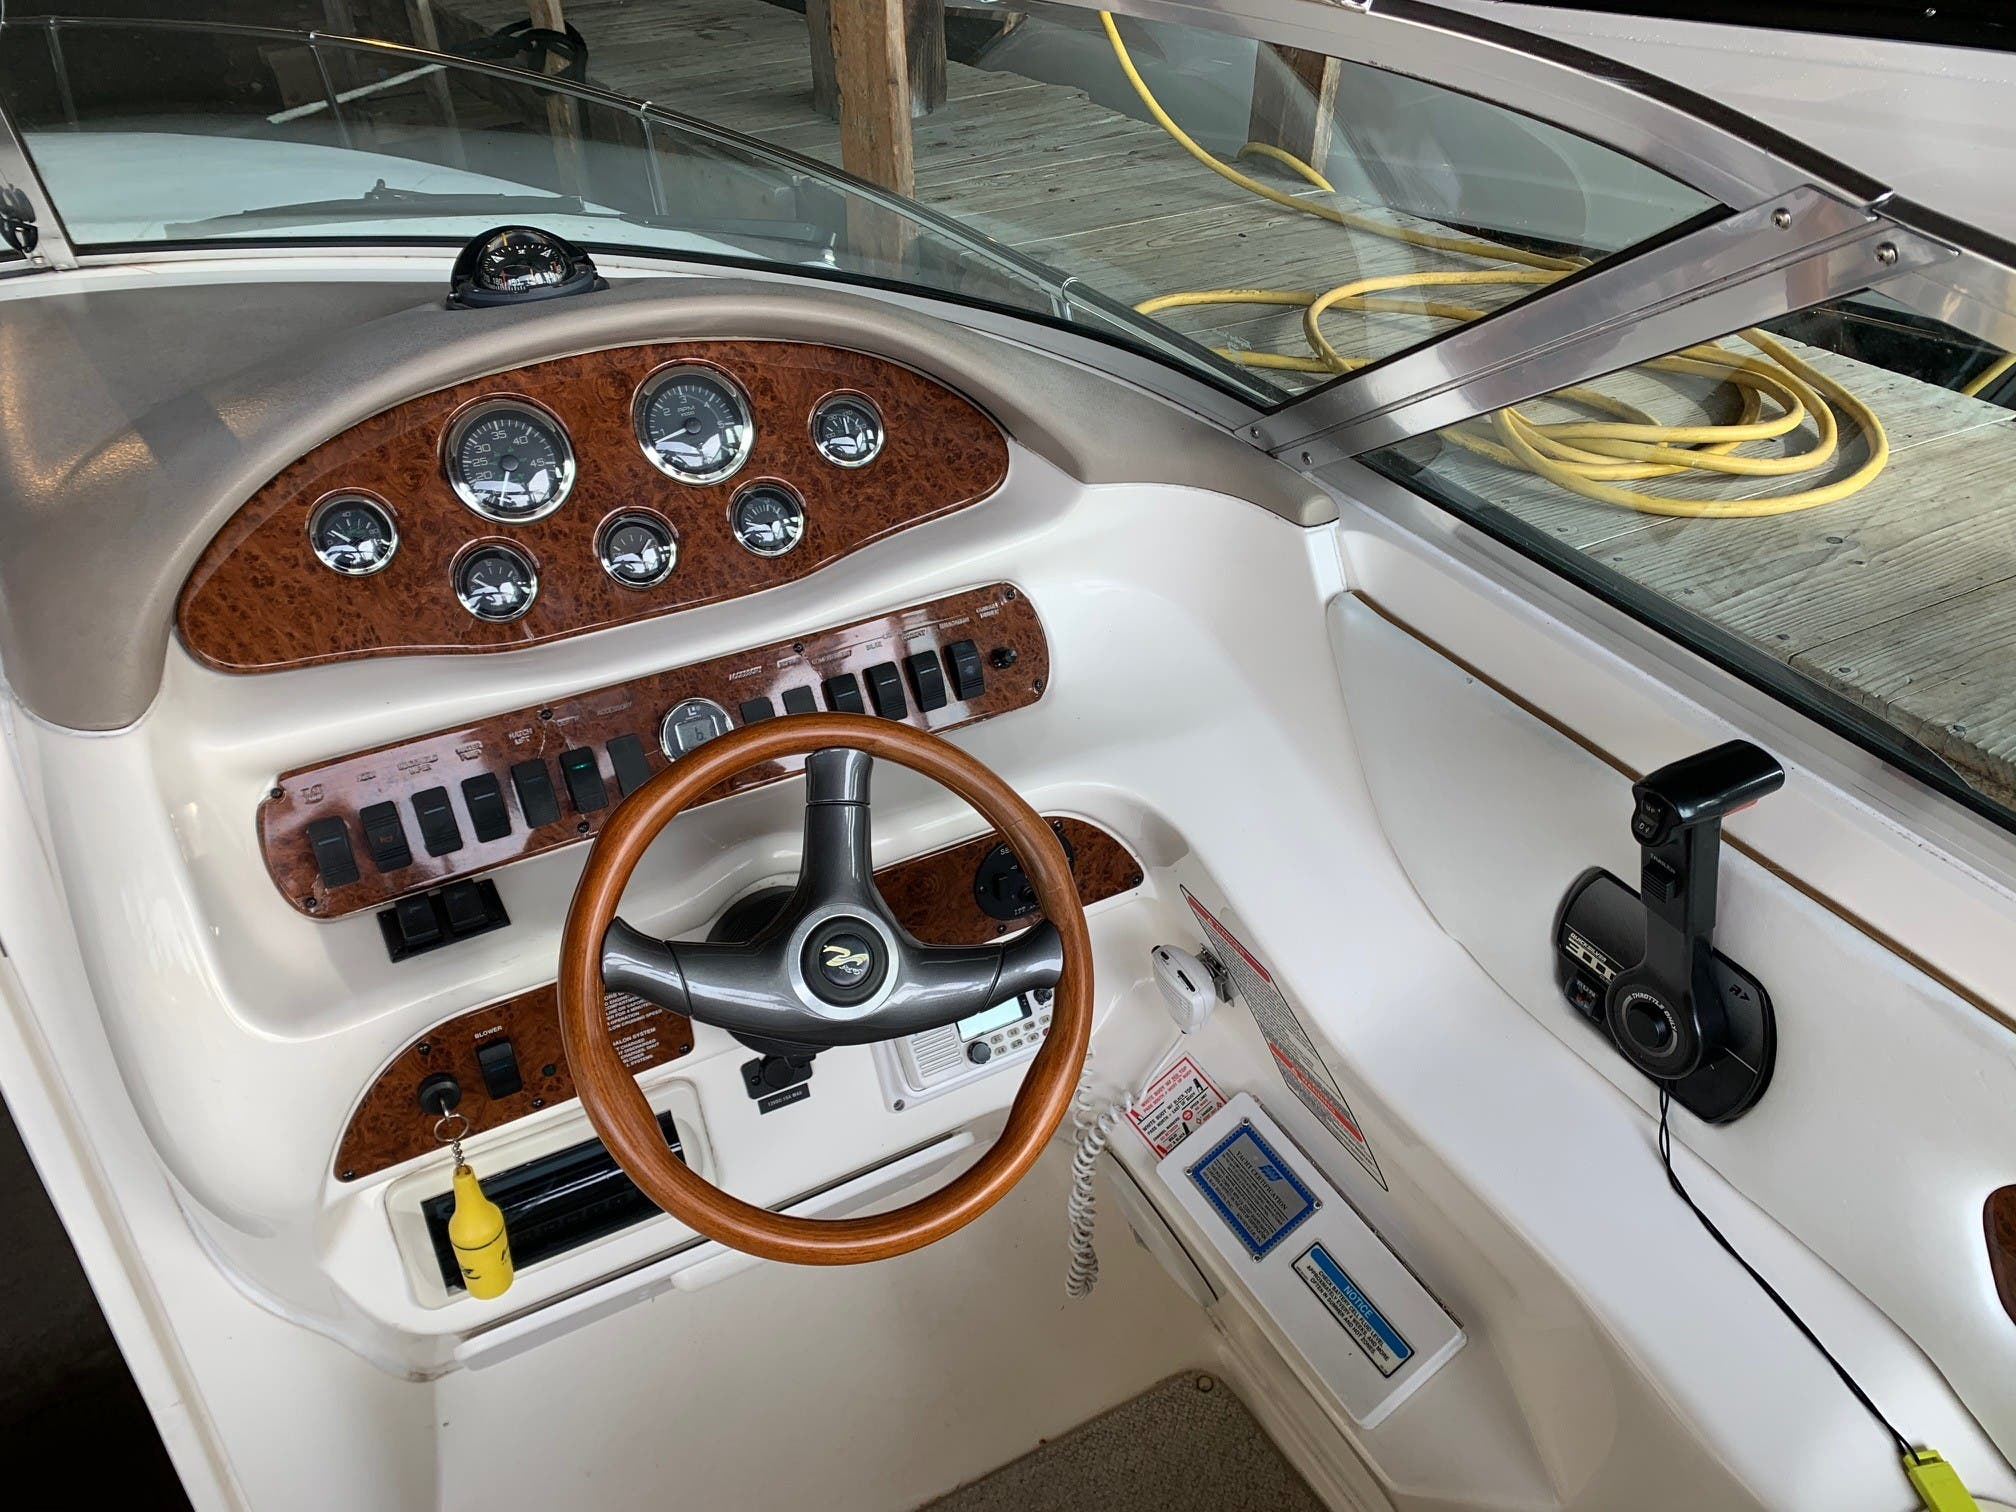 1998 Sea Ray boat for sale, model of the boat is 280 Sunsport & Image # 6 of 11